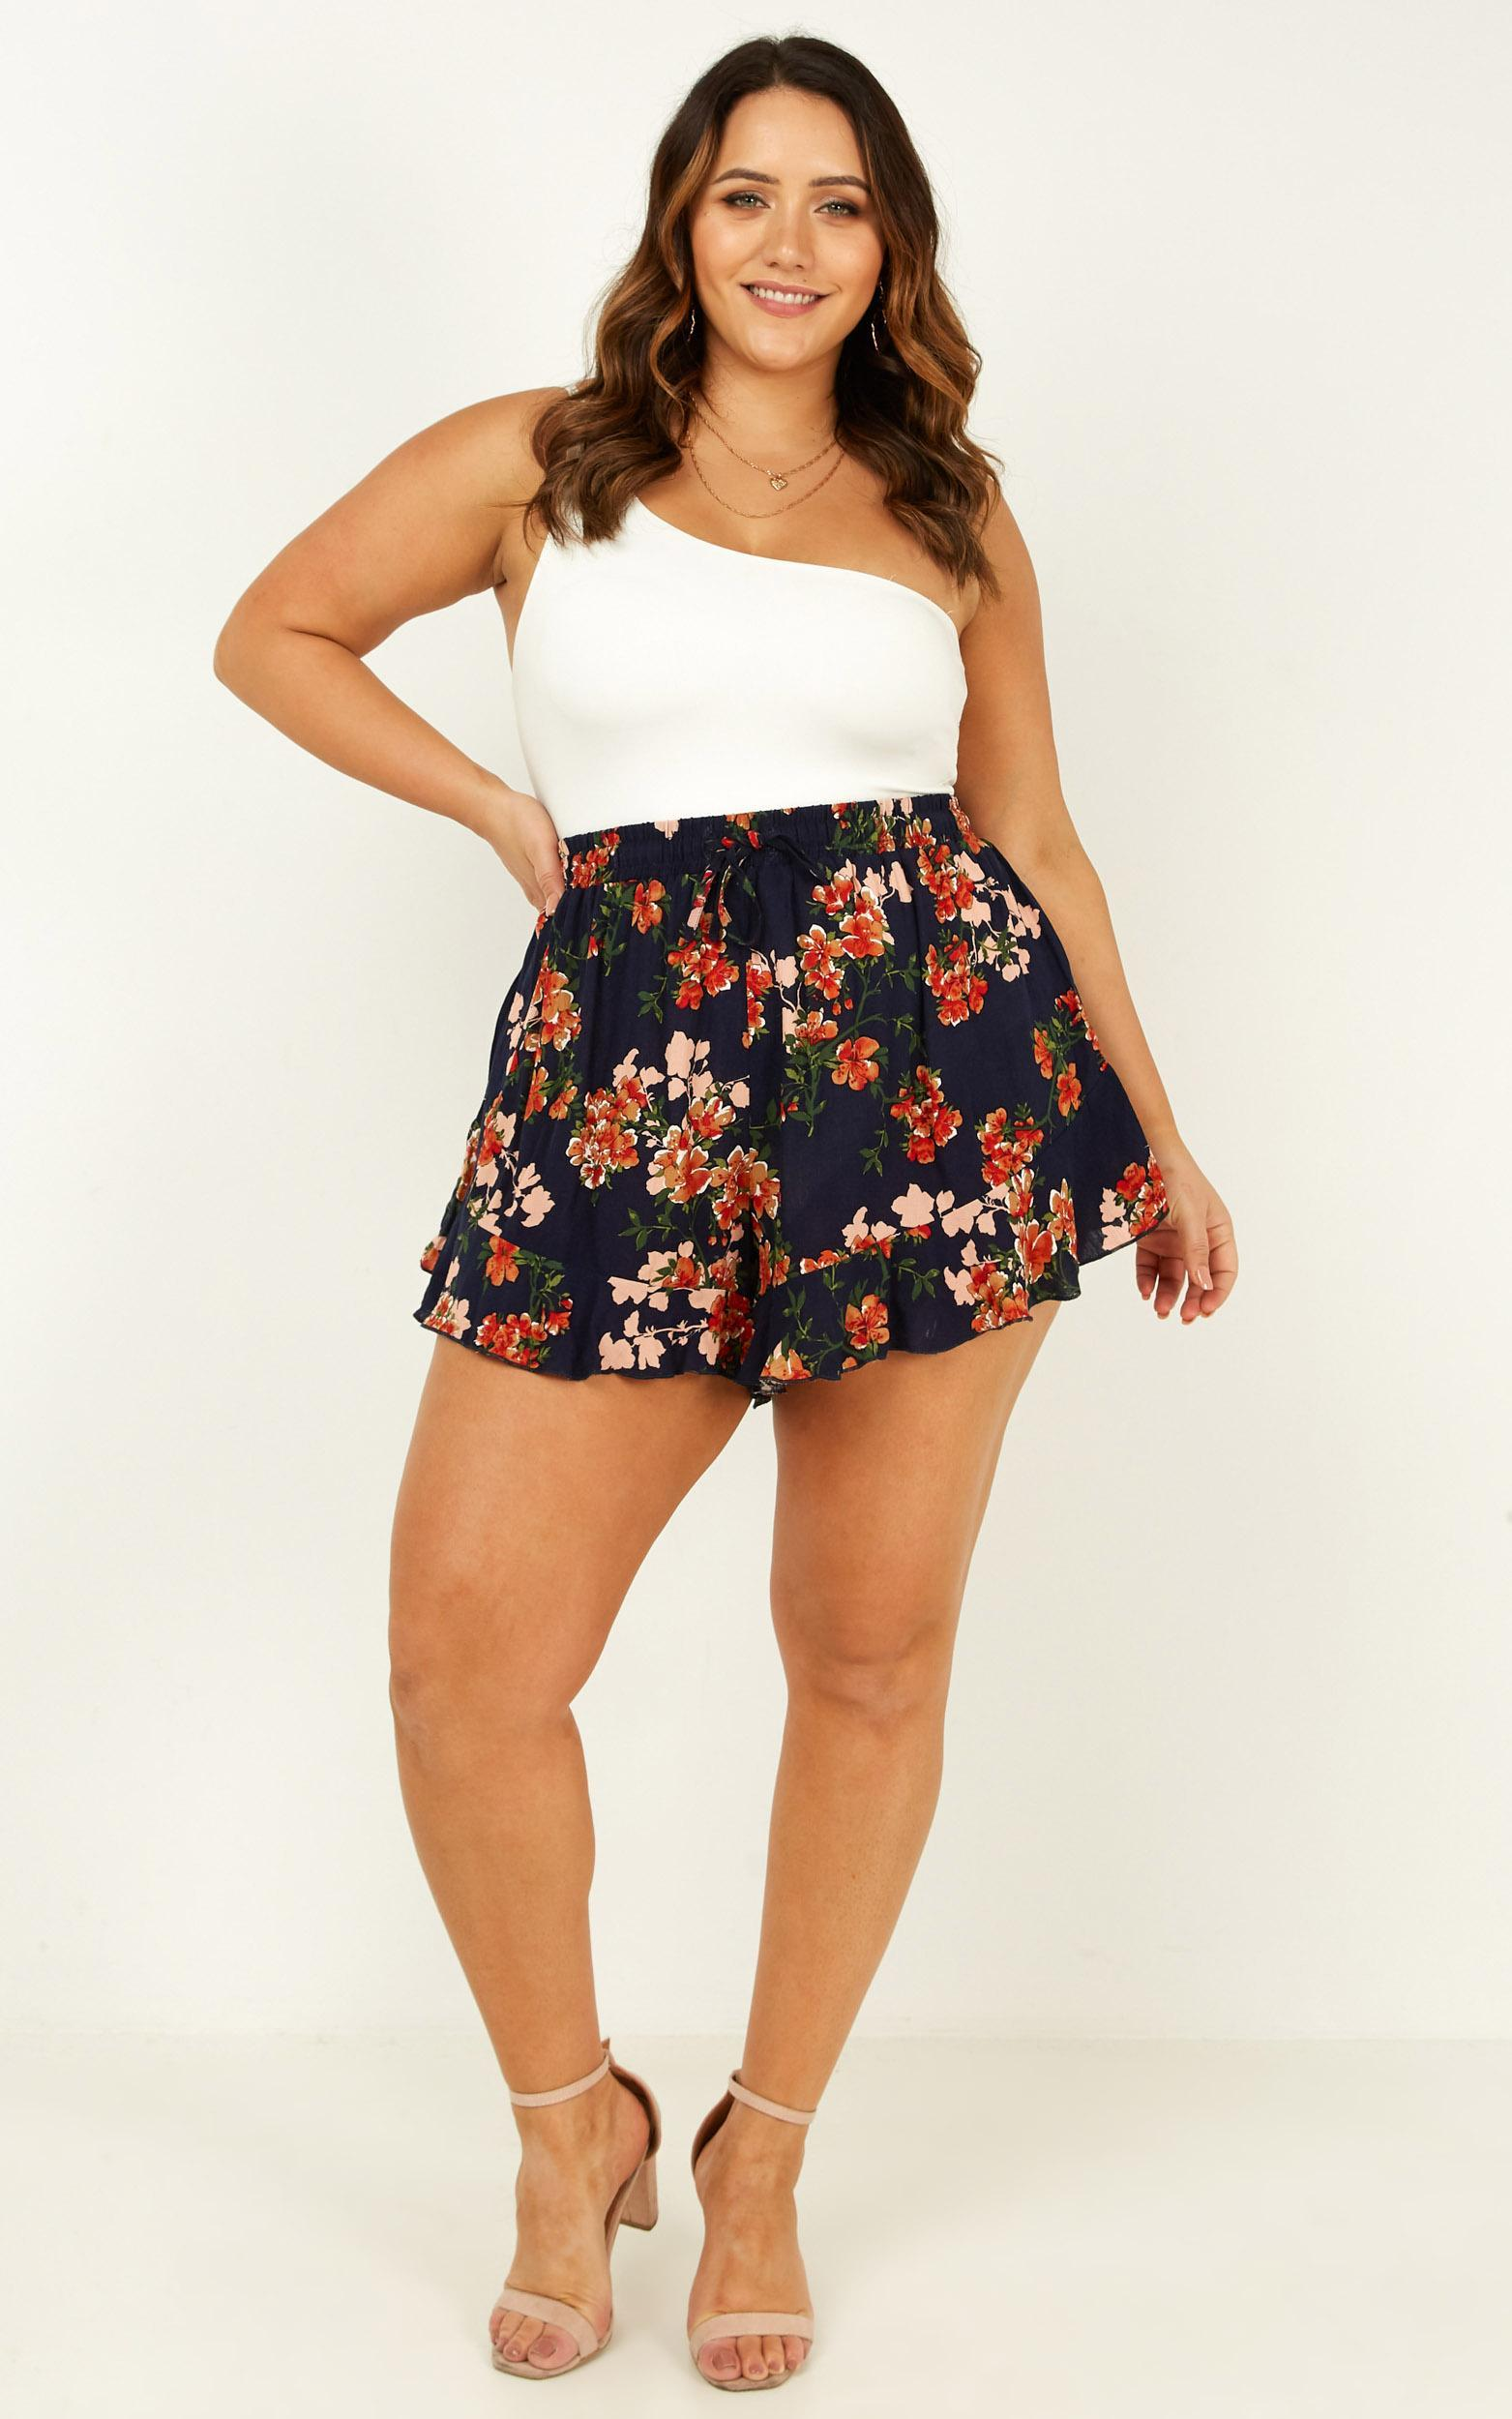 Holidaying Shorts in navy floral - 12 (L), Navy, hi-res image number null